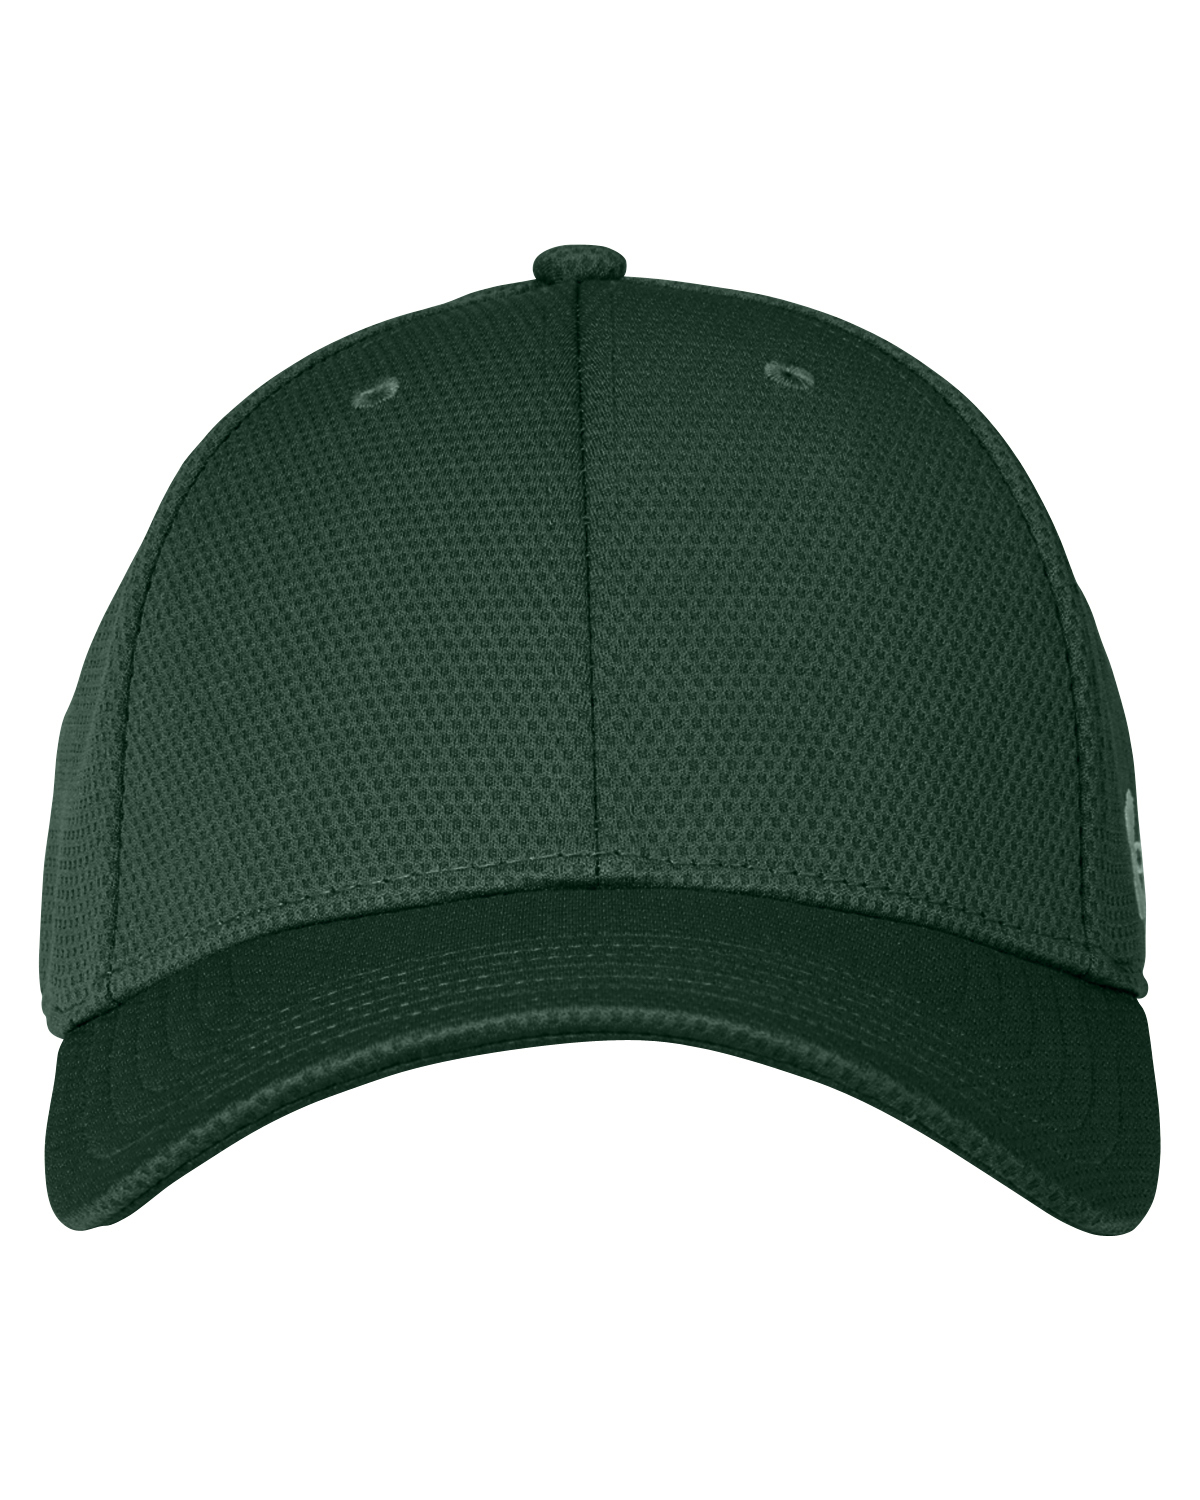 Under Armour 1282154 - Curved Bill Solid Cap